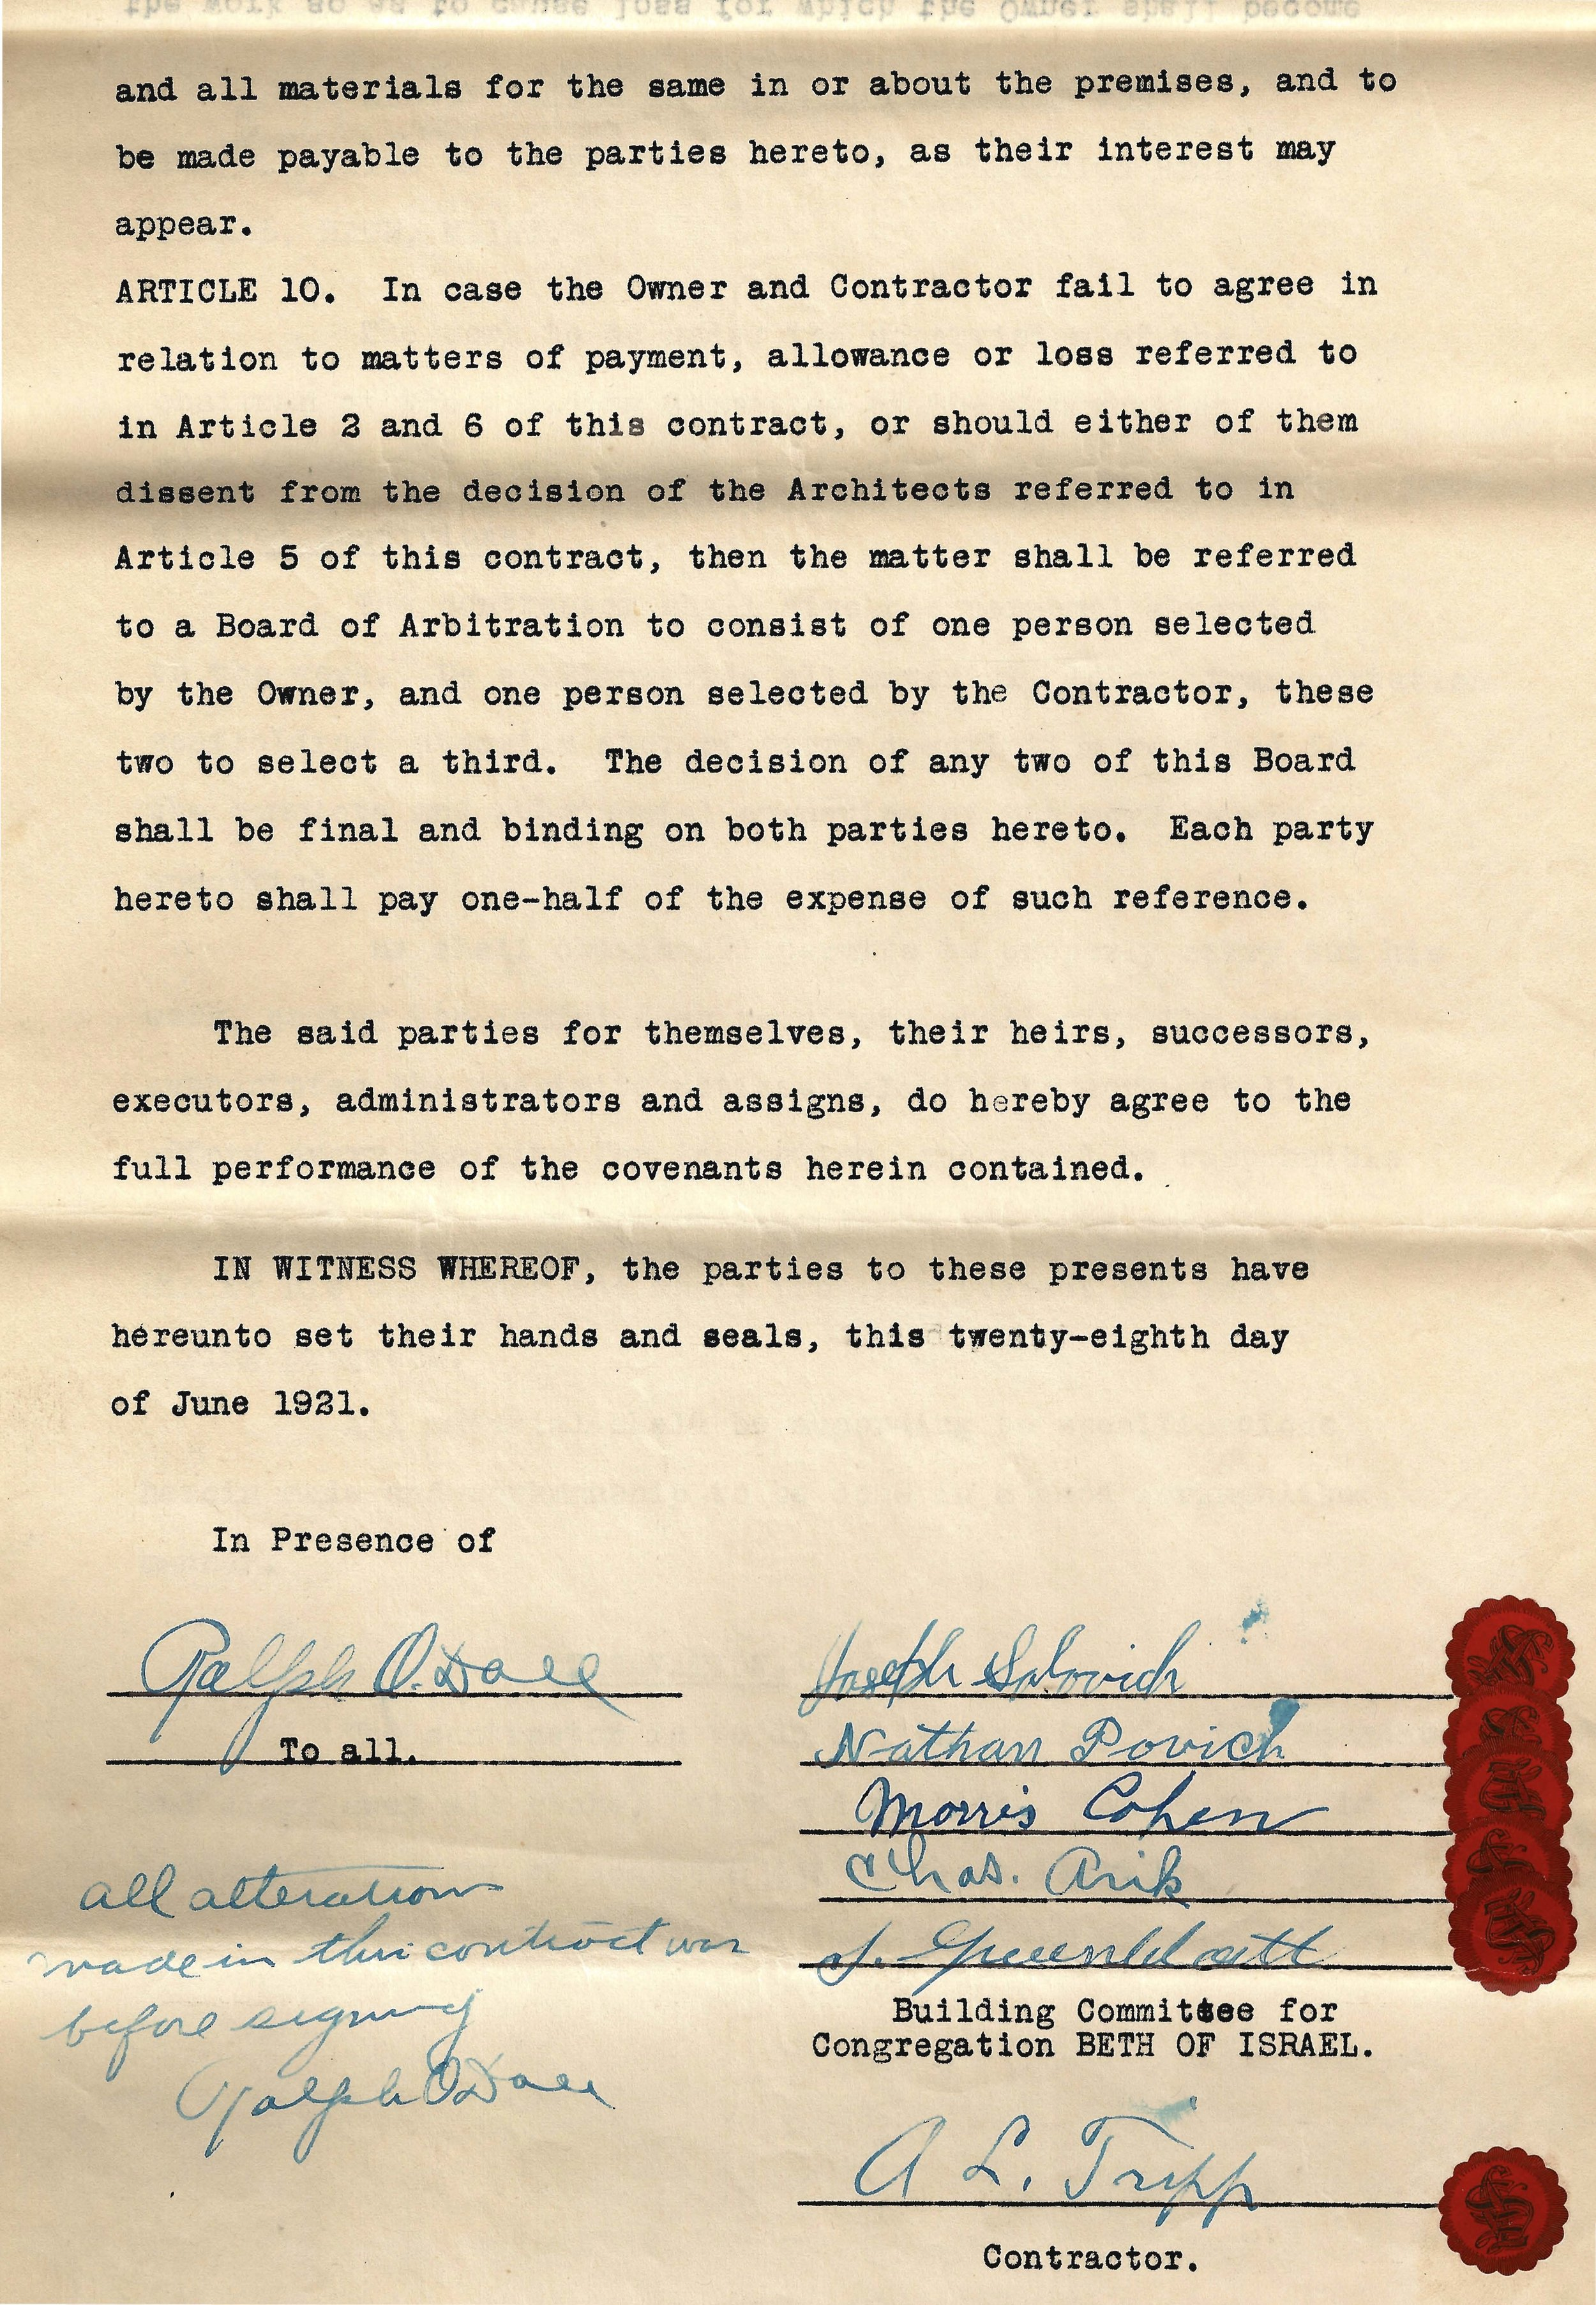 Contractor Agreement (1921)_Page_05.jpg